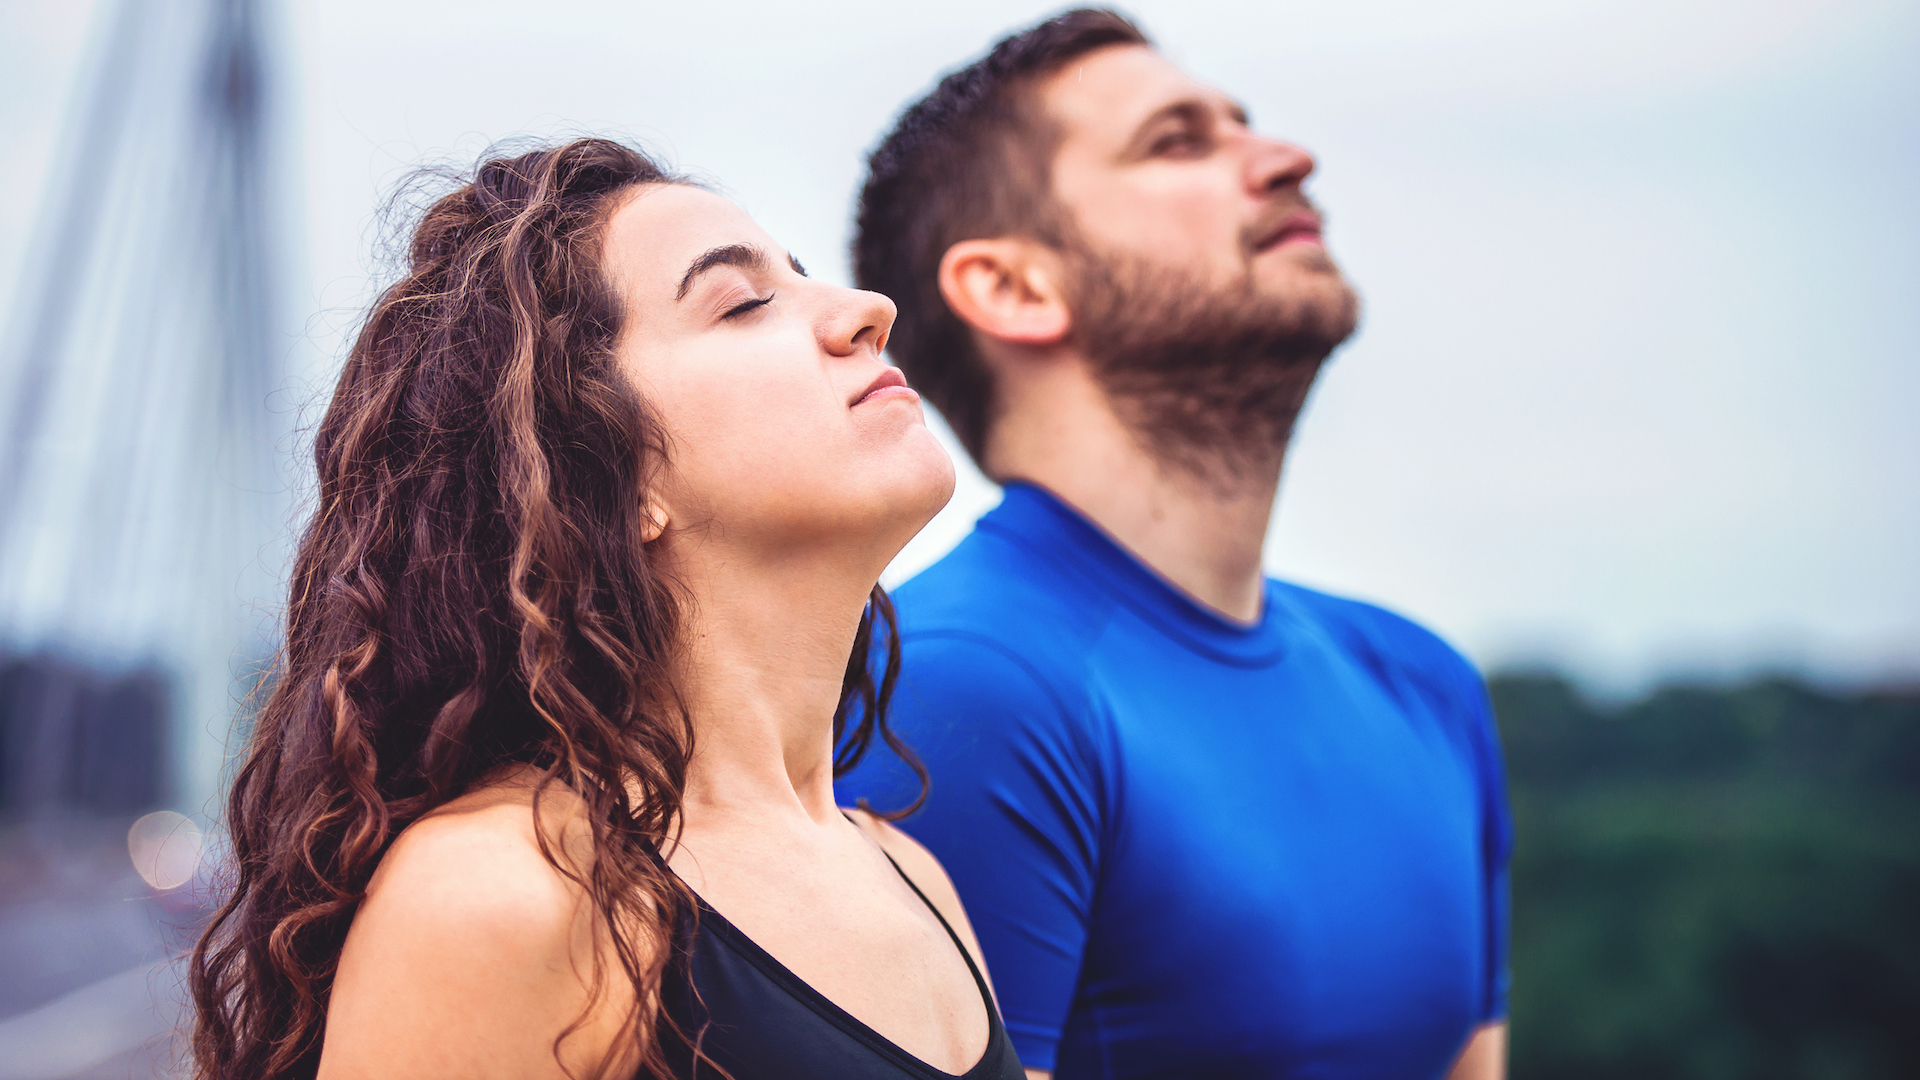 Breathing Exercises: The Benefits of Nasal Breathing